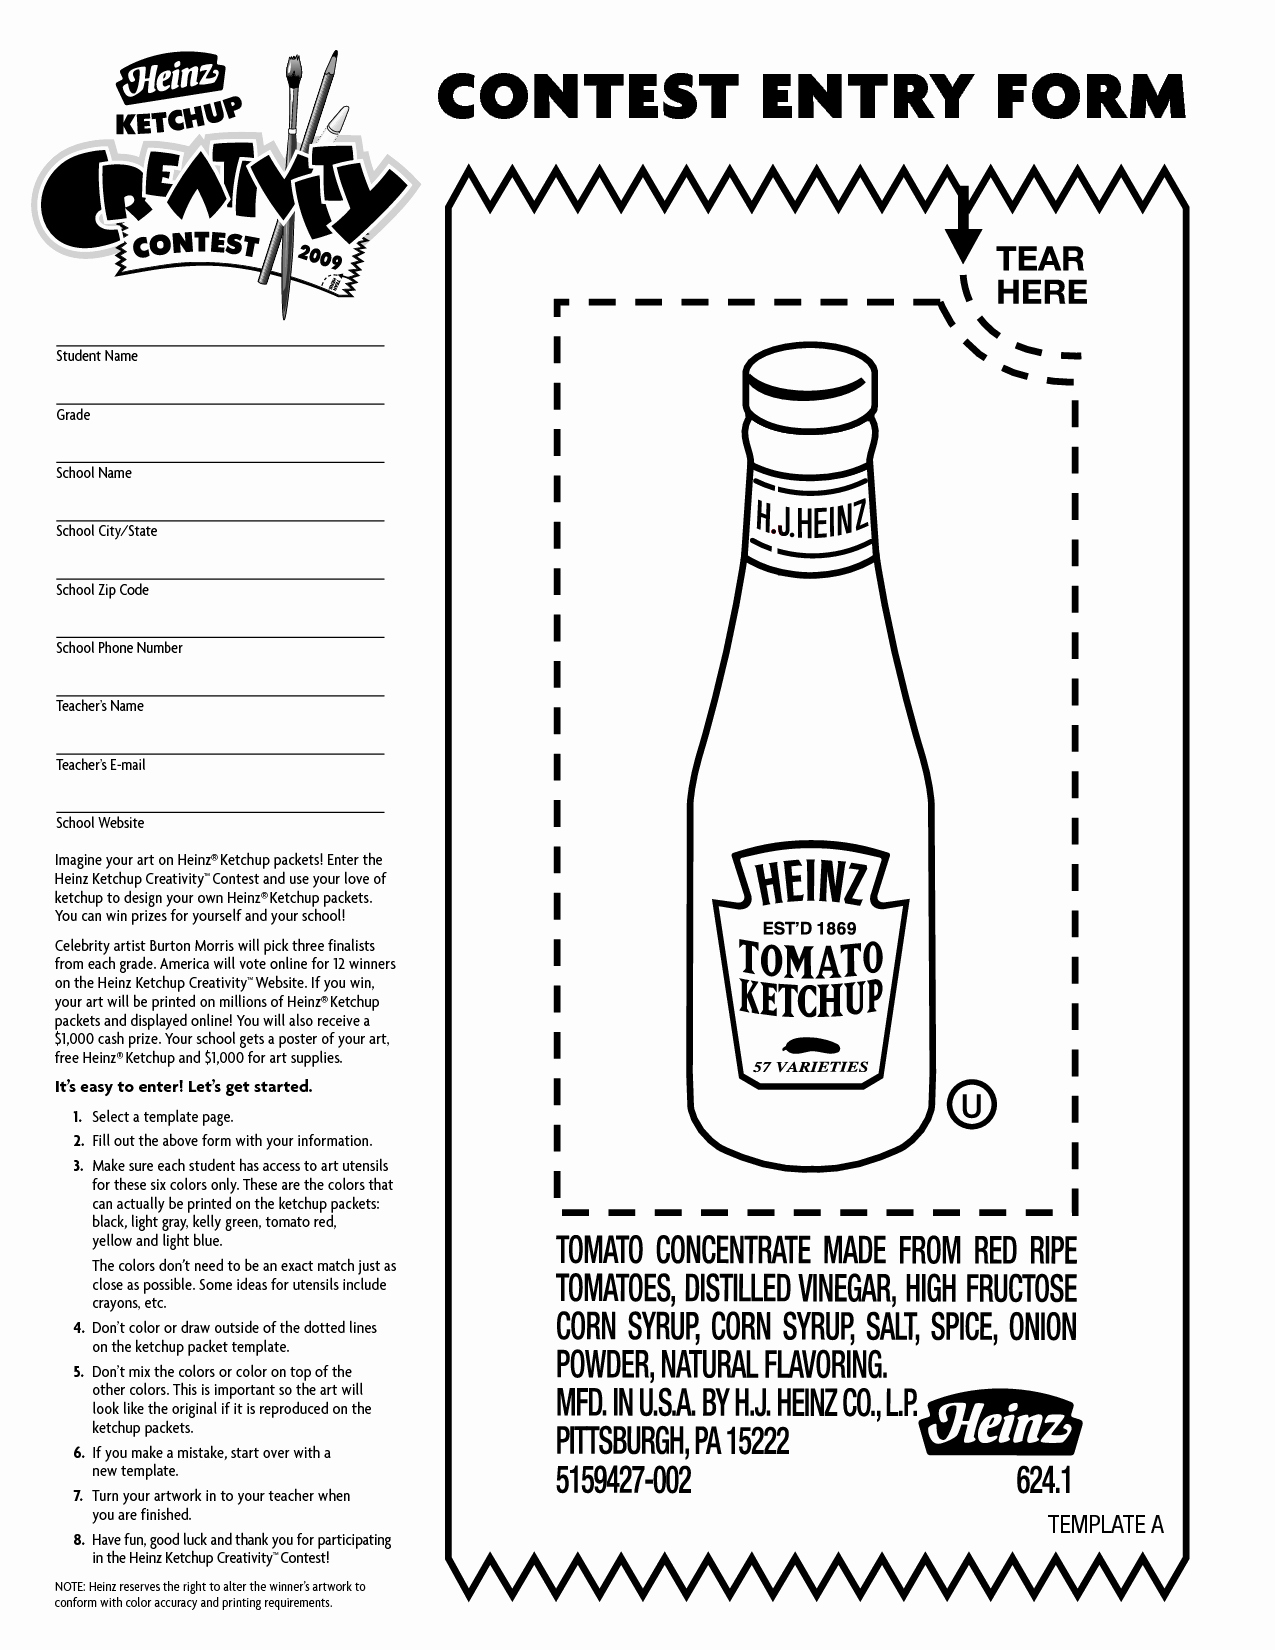 Contest Entry form Template Unique Draw Entry form Template Etame Mibawa